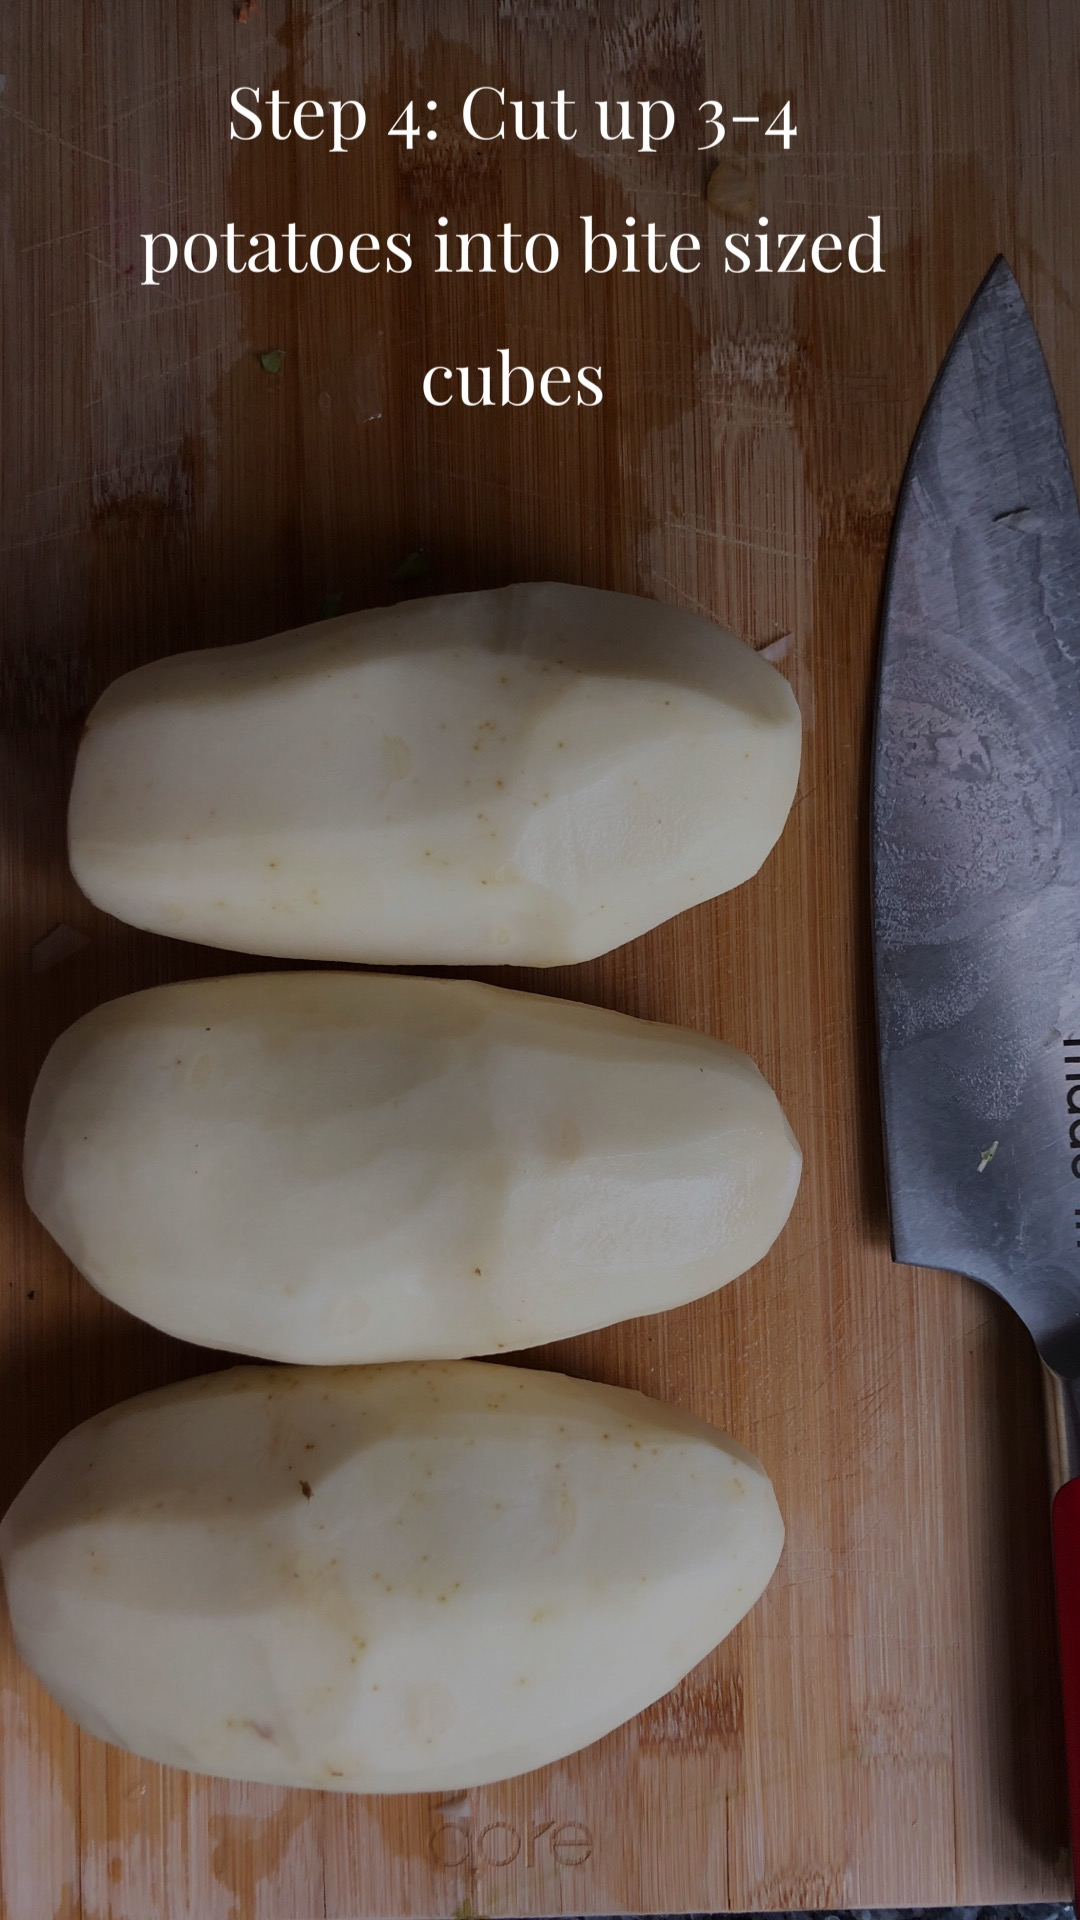 Three potatoes lined next to a knife